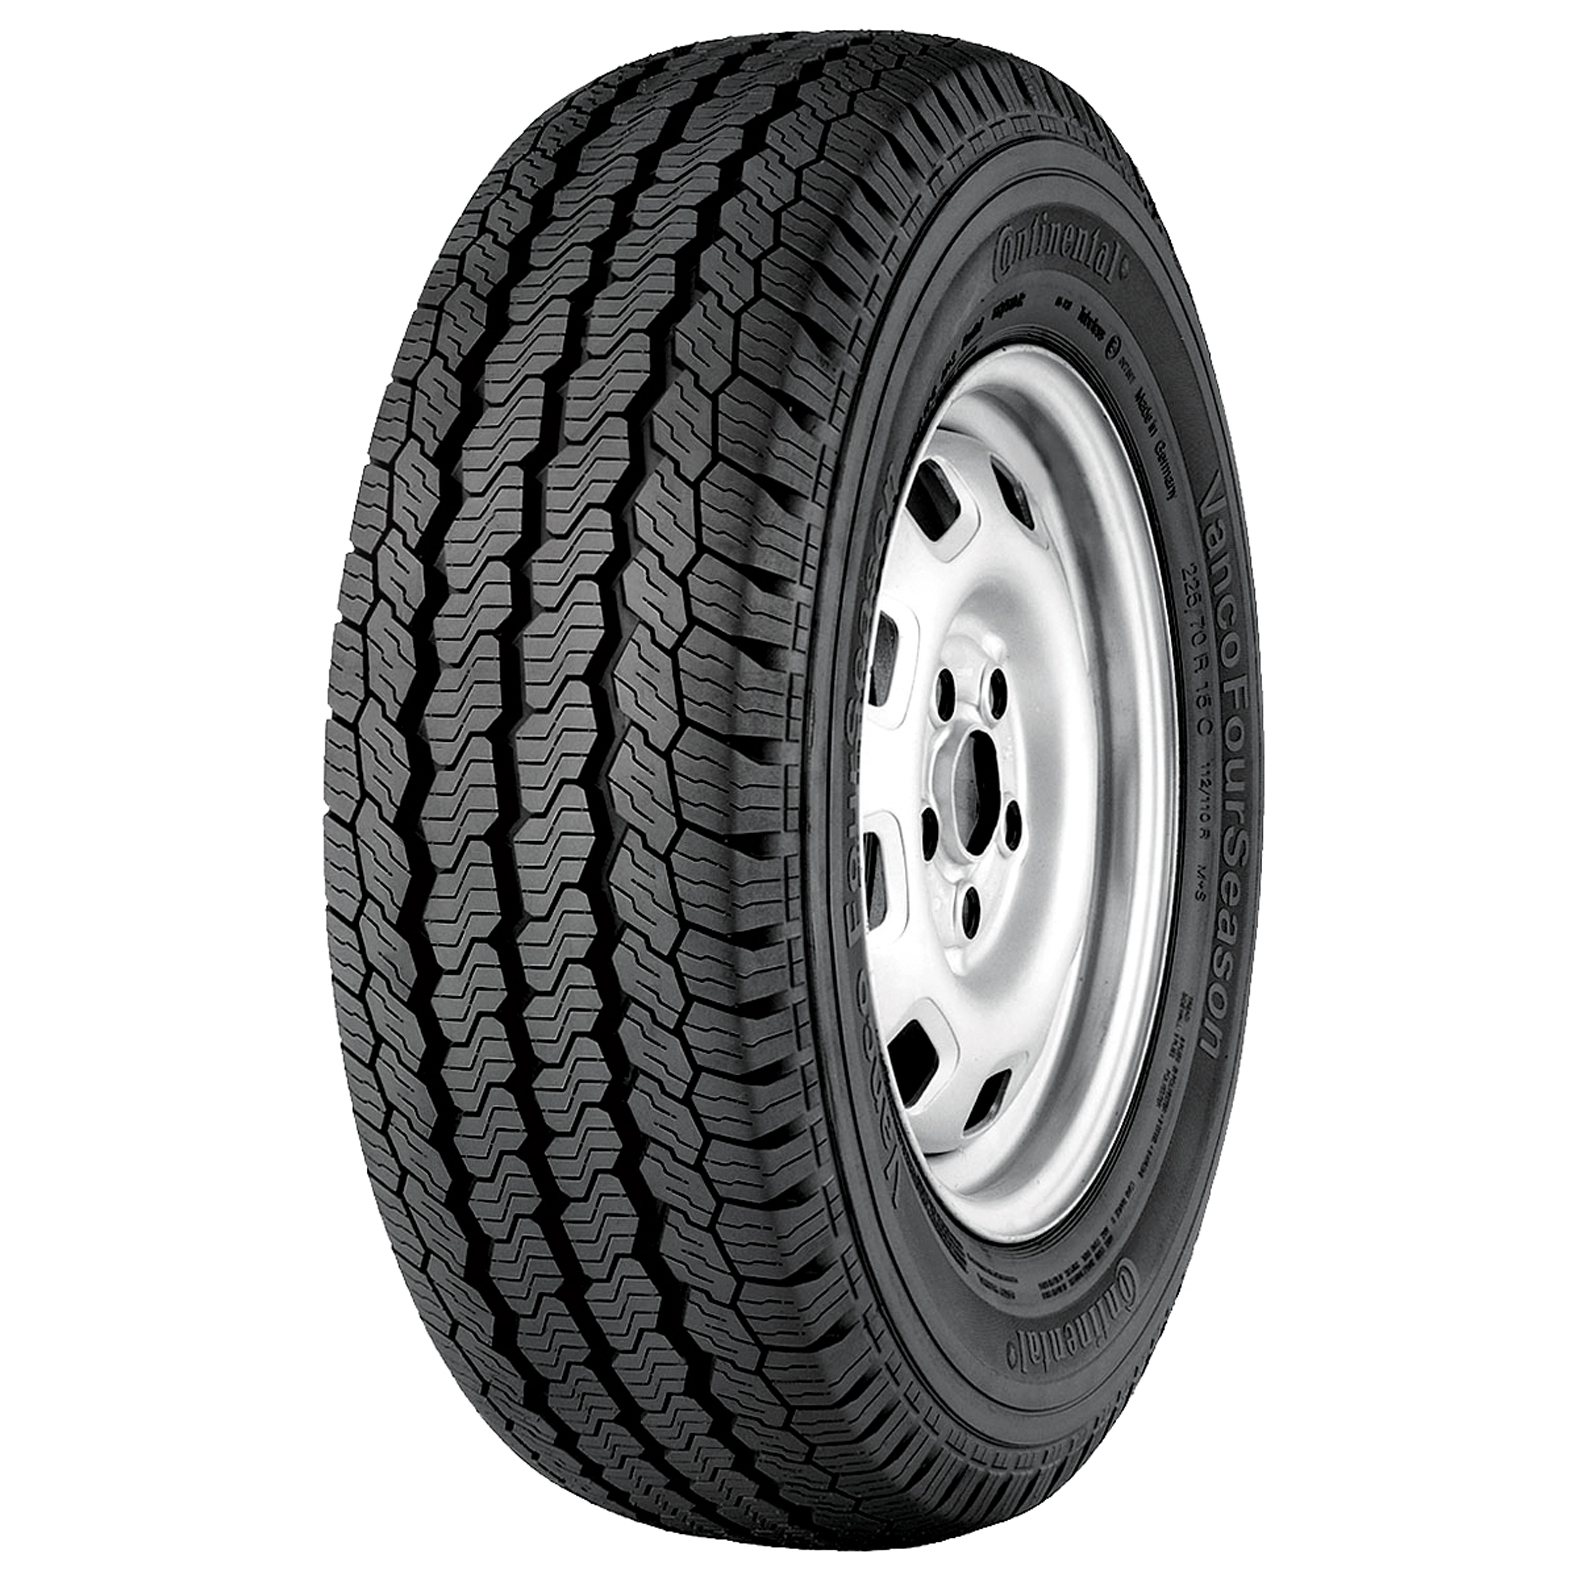 Continental VANCO 4 SEASON tire - angle